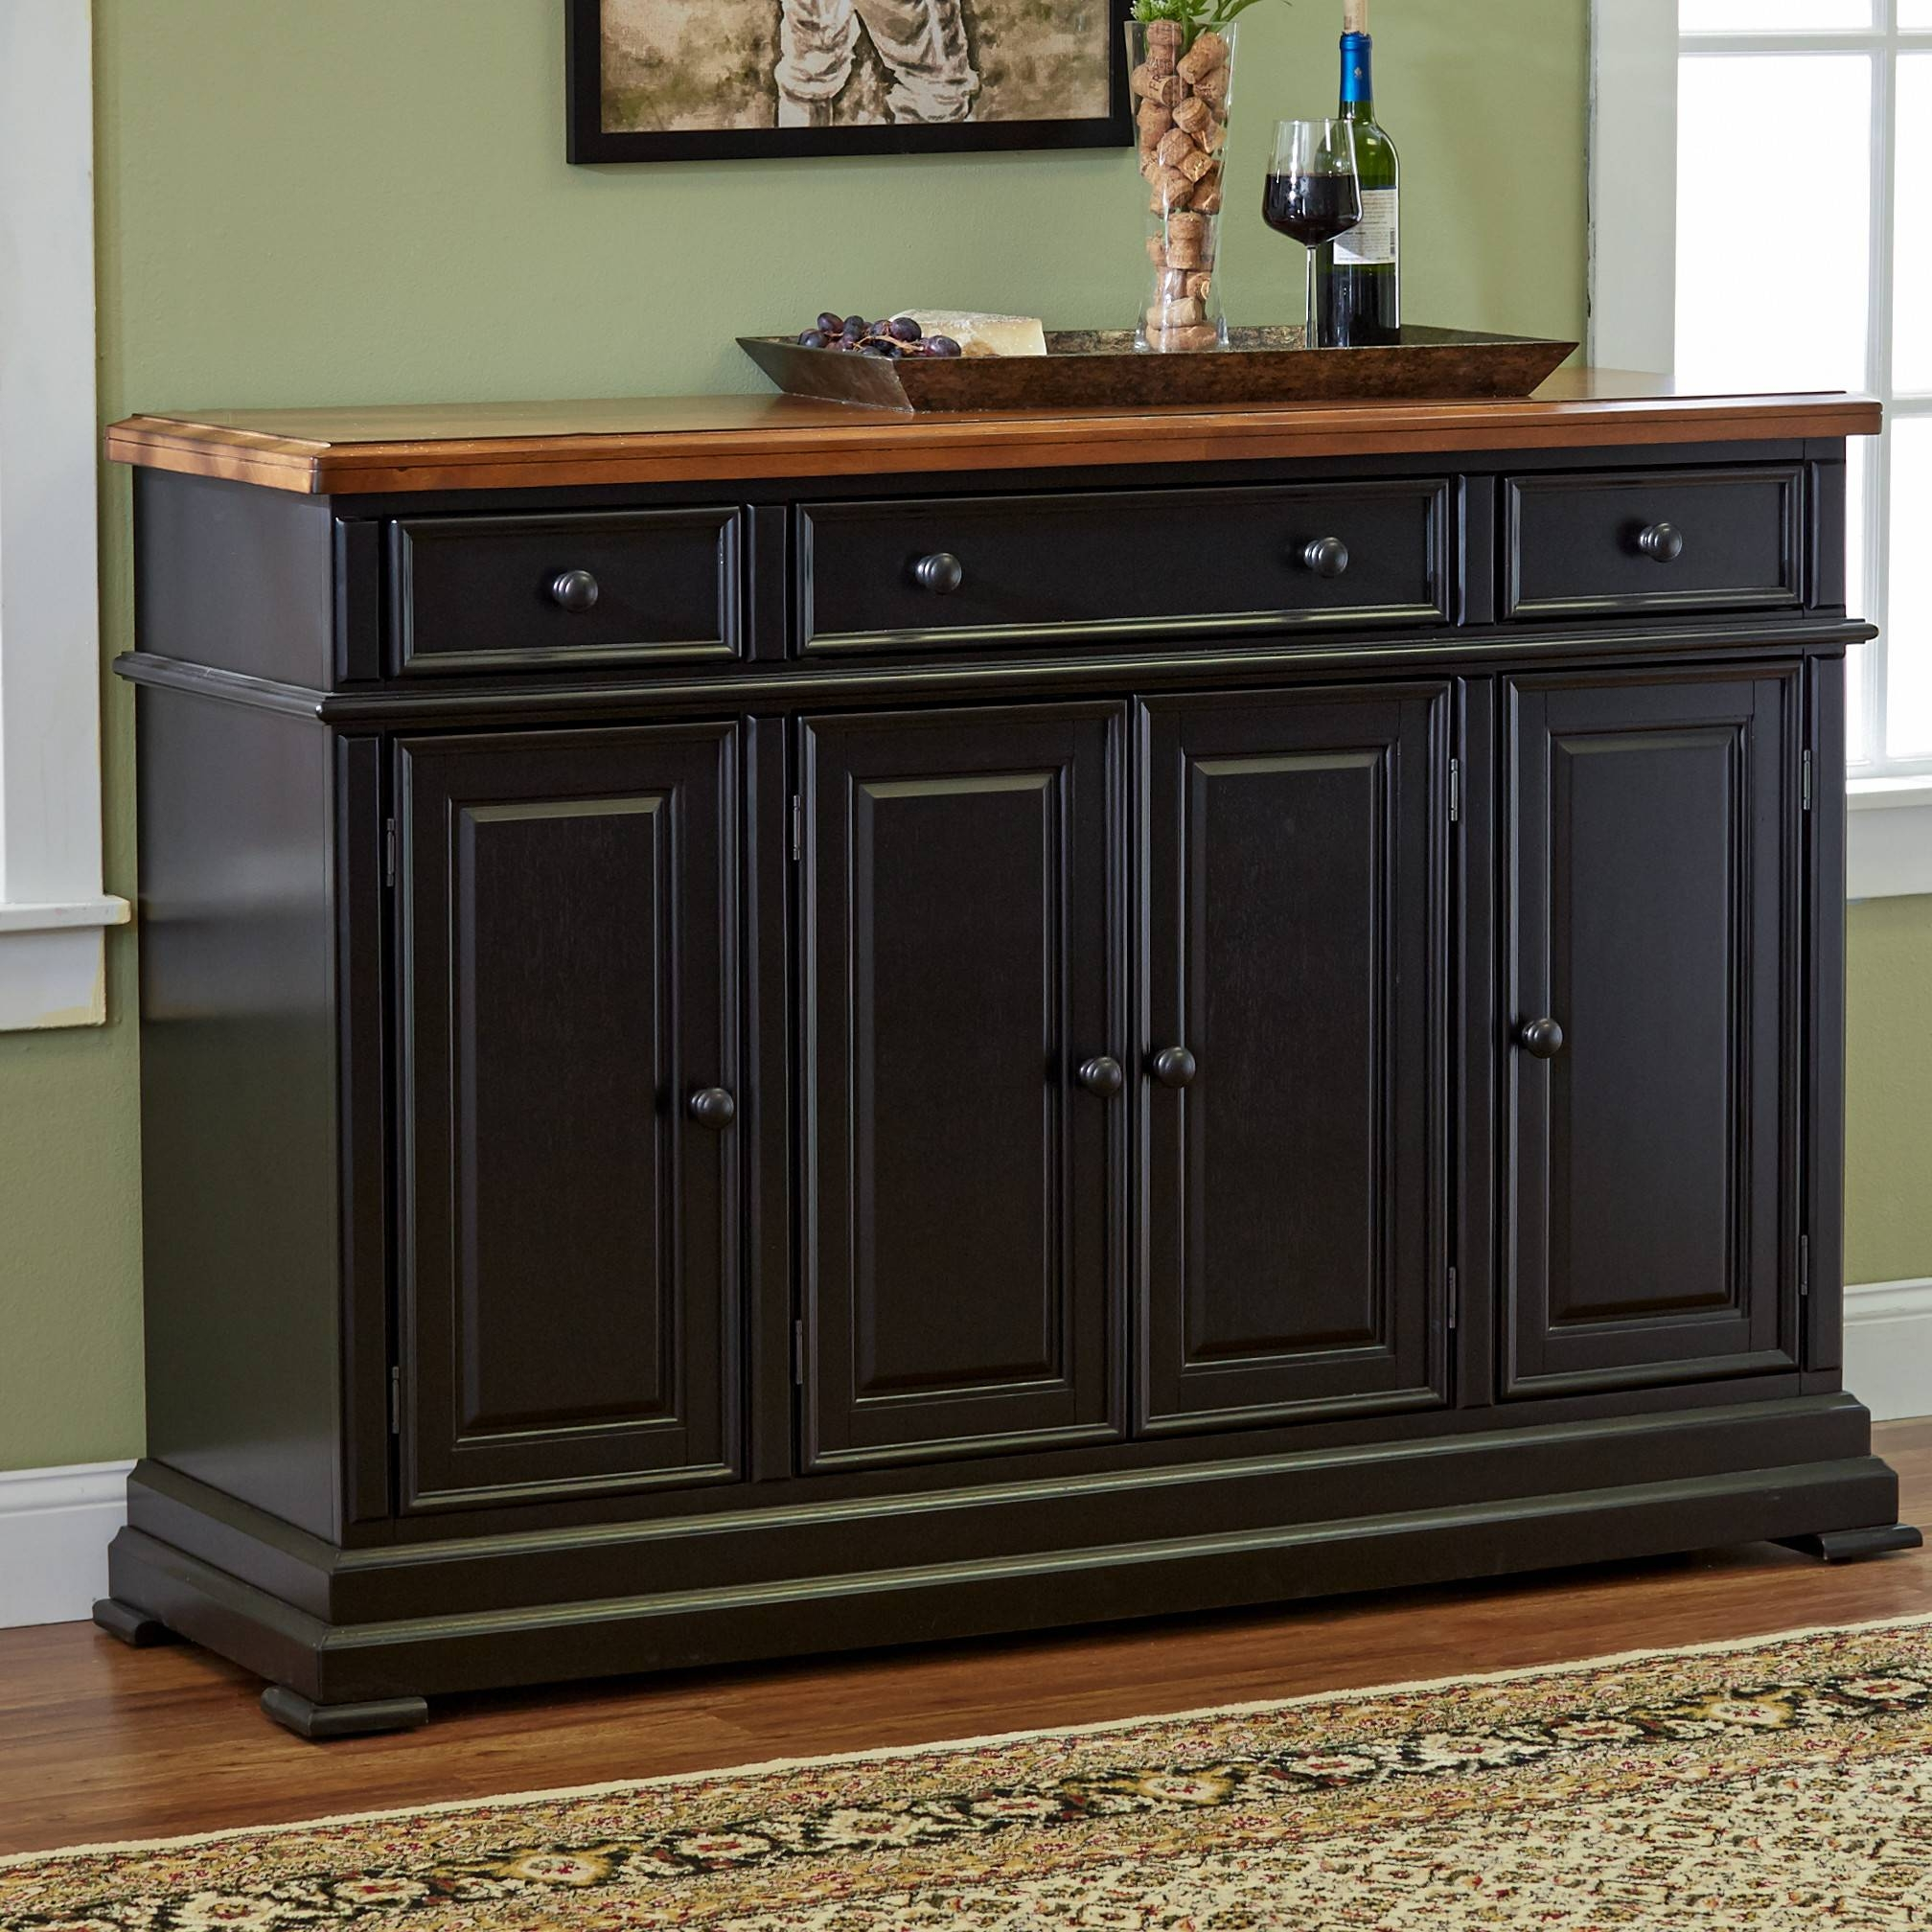 Kchen Sideboard. Simple Costzon Storage Sideboard Home Kitchen For Dining Room Sideboards And Buffets (Gallery 10 of 15)